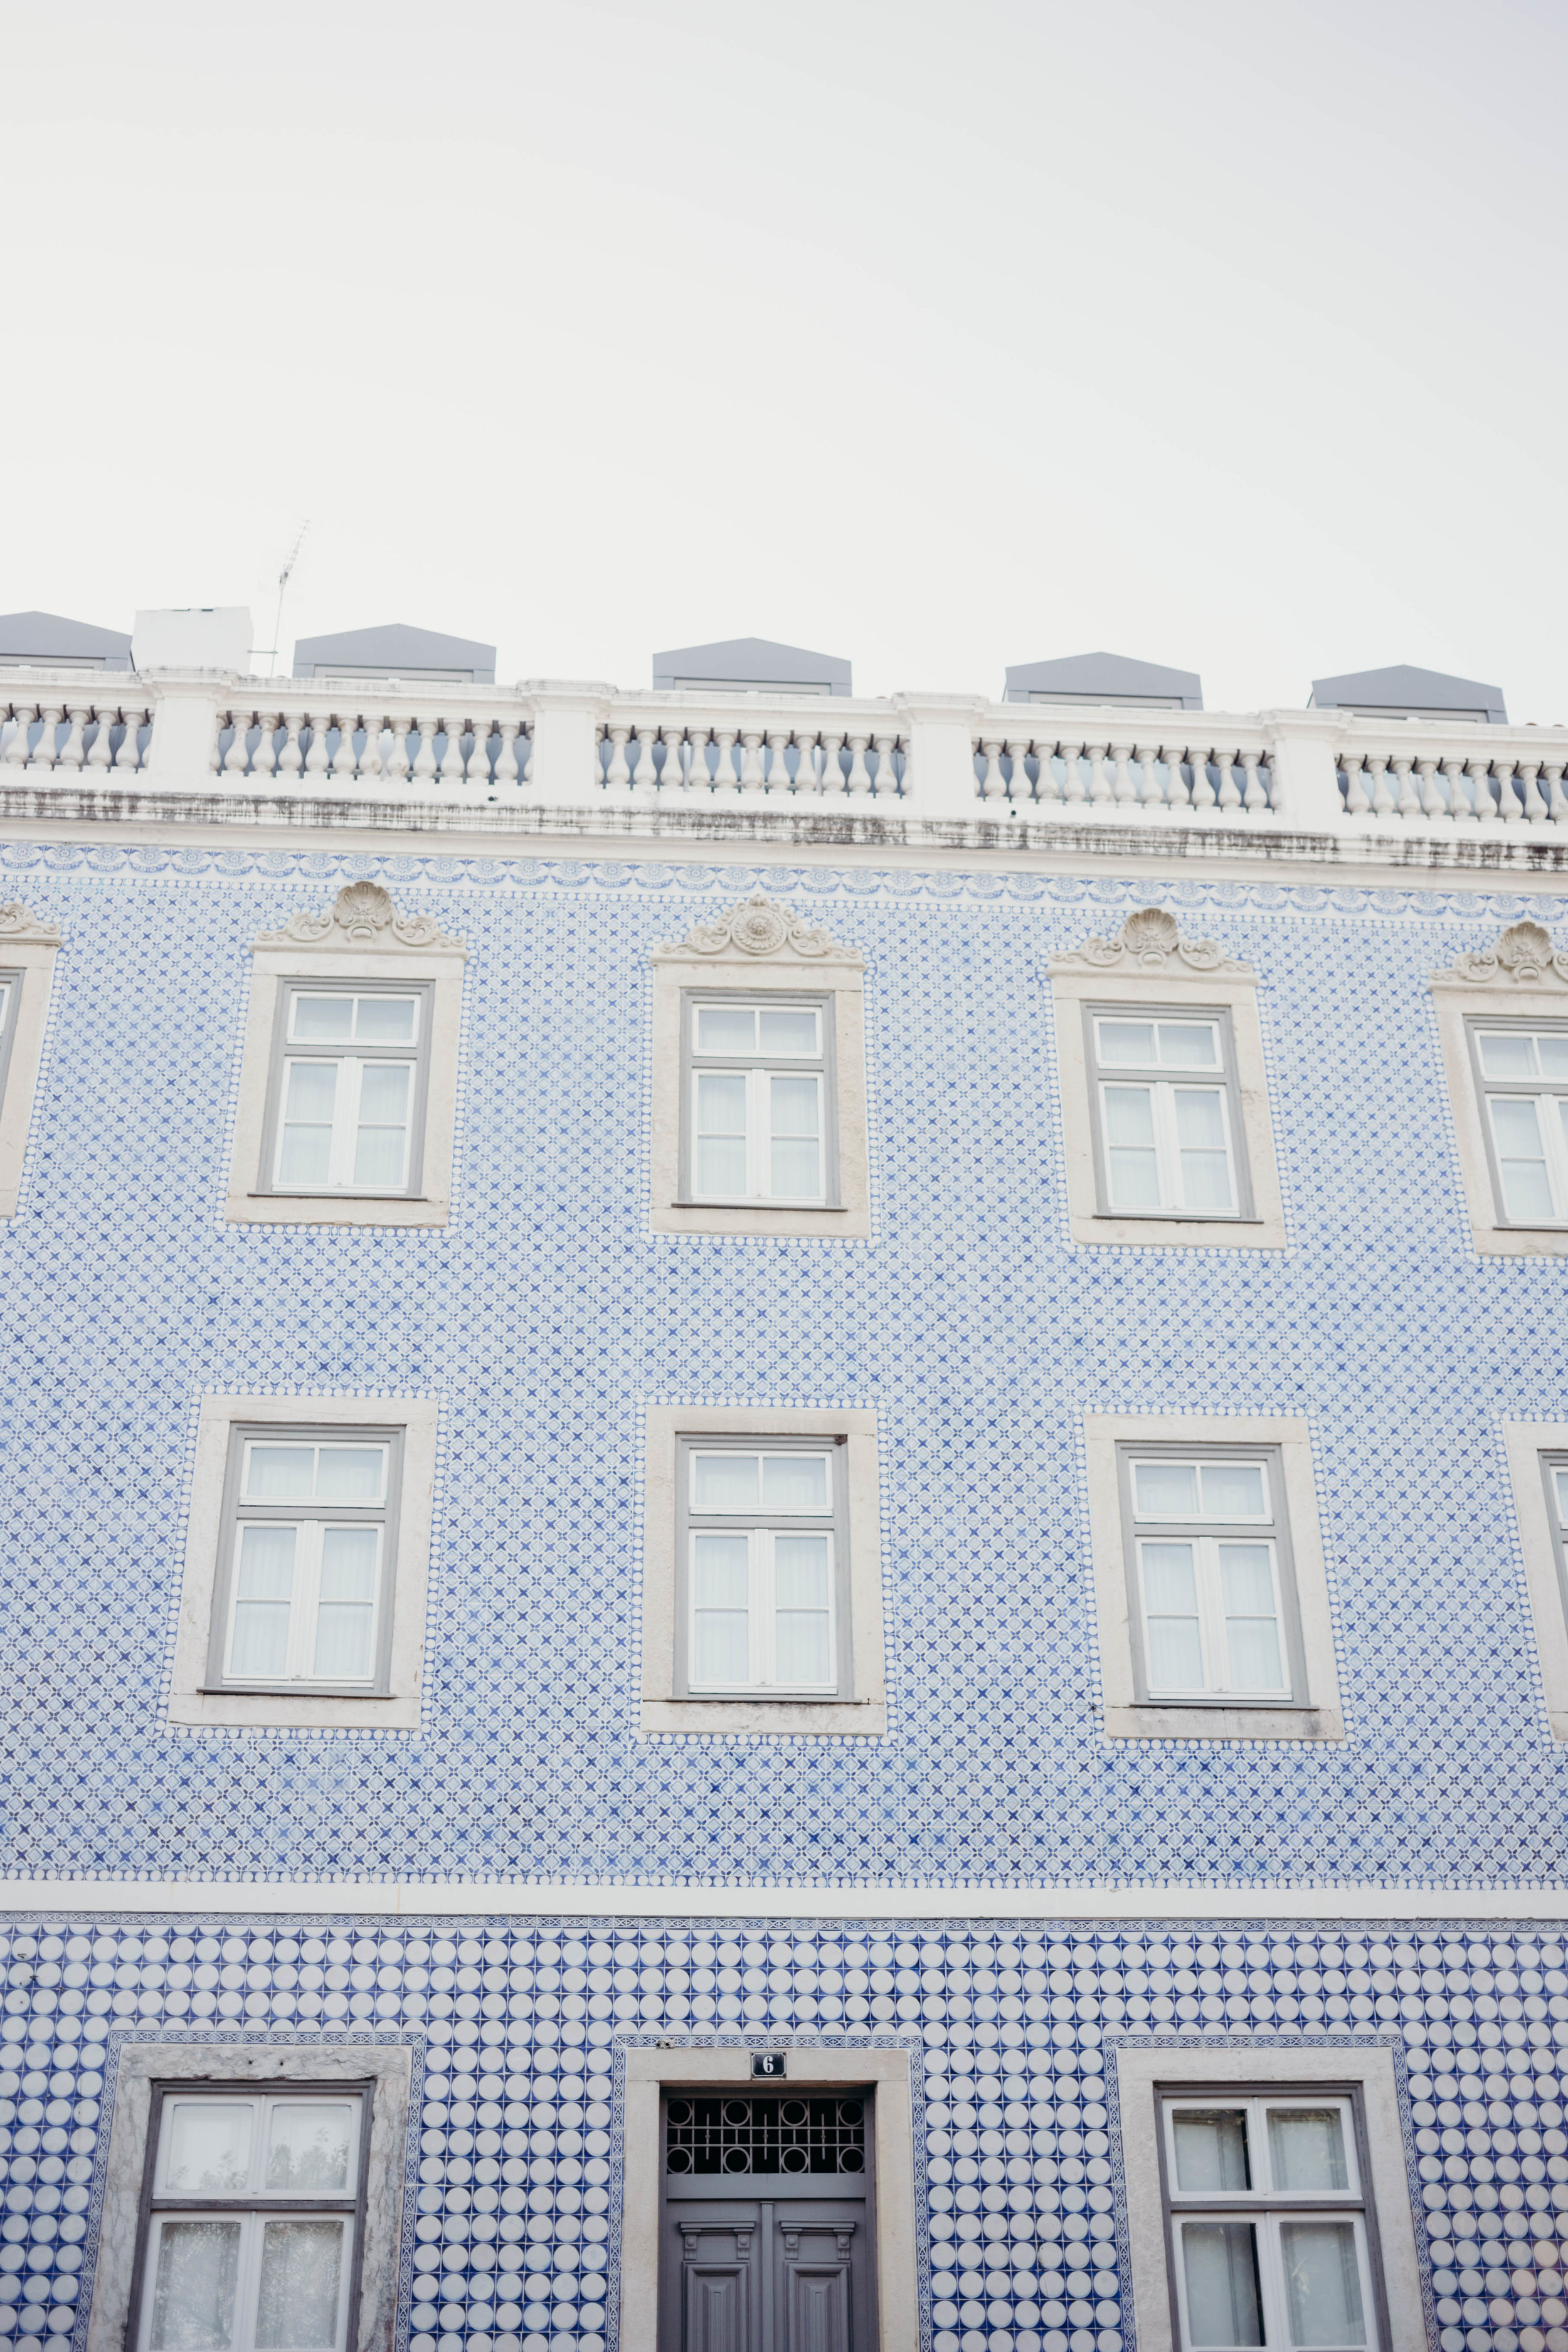 Our Portugal Travel Diary: Lisbon, Porto, and More | On the Street Where We Live (aretherelilactrees.com)  Alfama